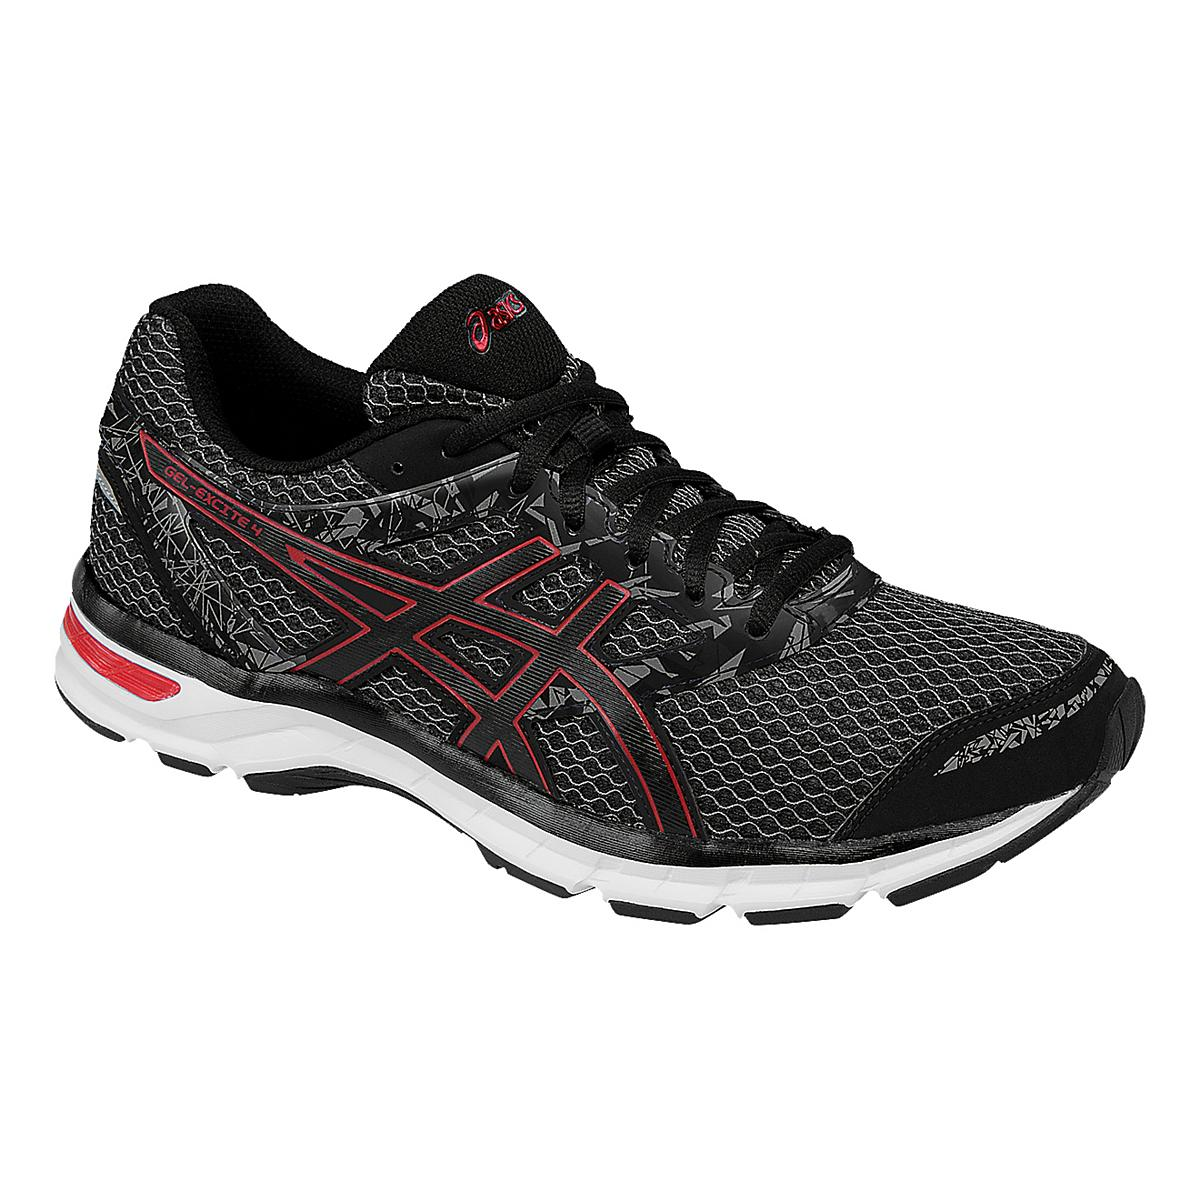 Mens ASICS GEL-Excite 4 Running Shoe at Road Runner Sports e8d0bd133ef87